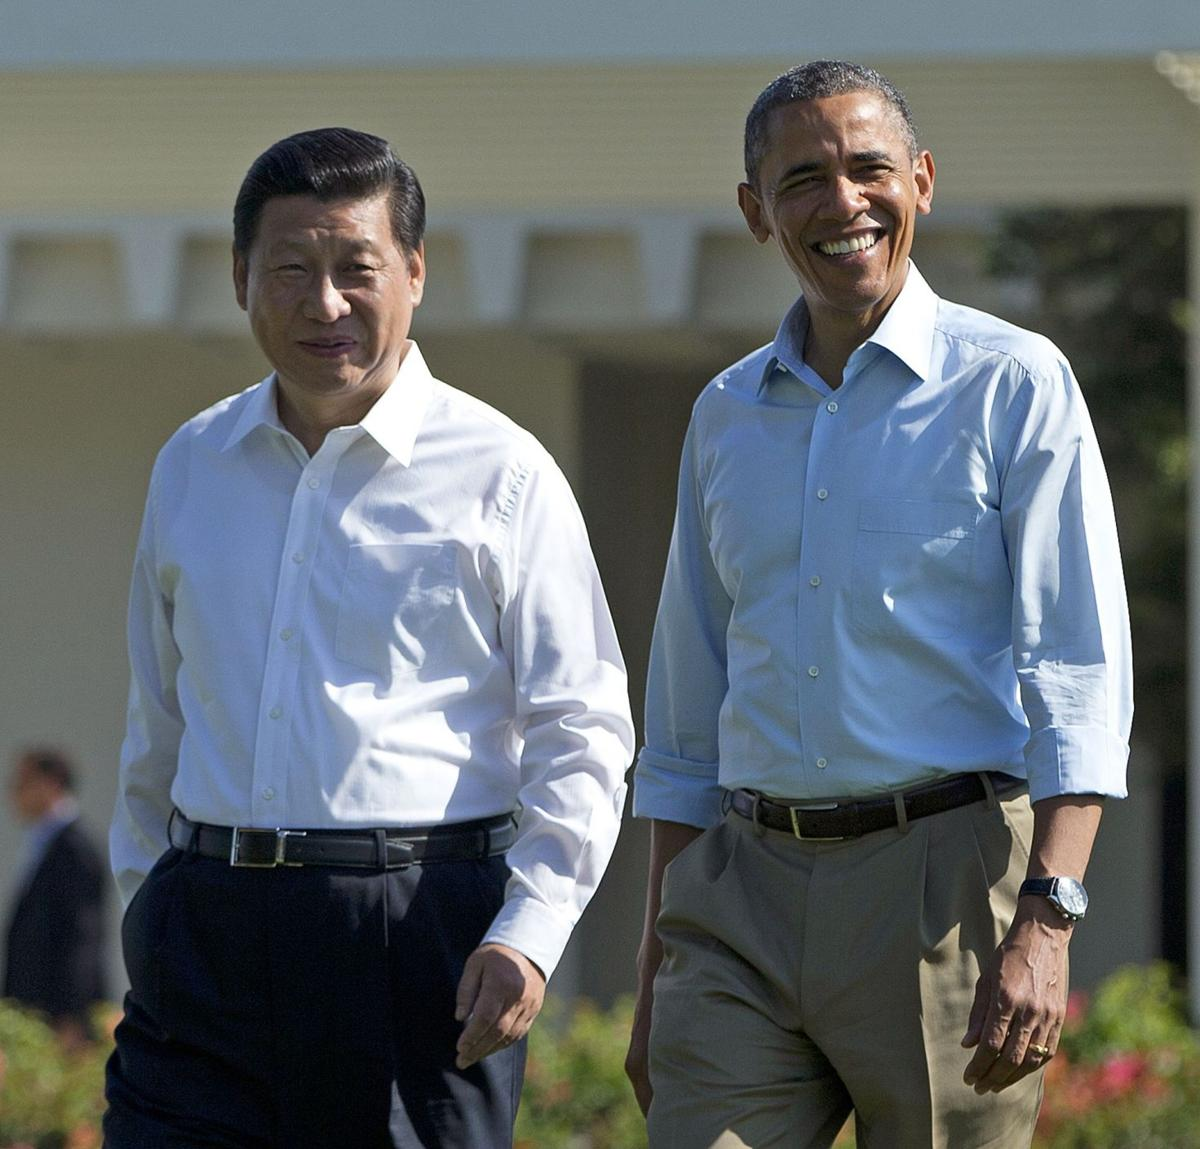 Obama presses Chinese leader on cybersecurity